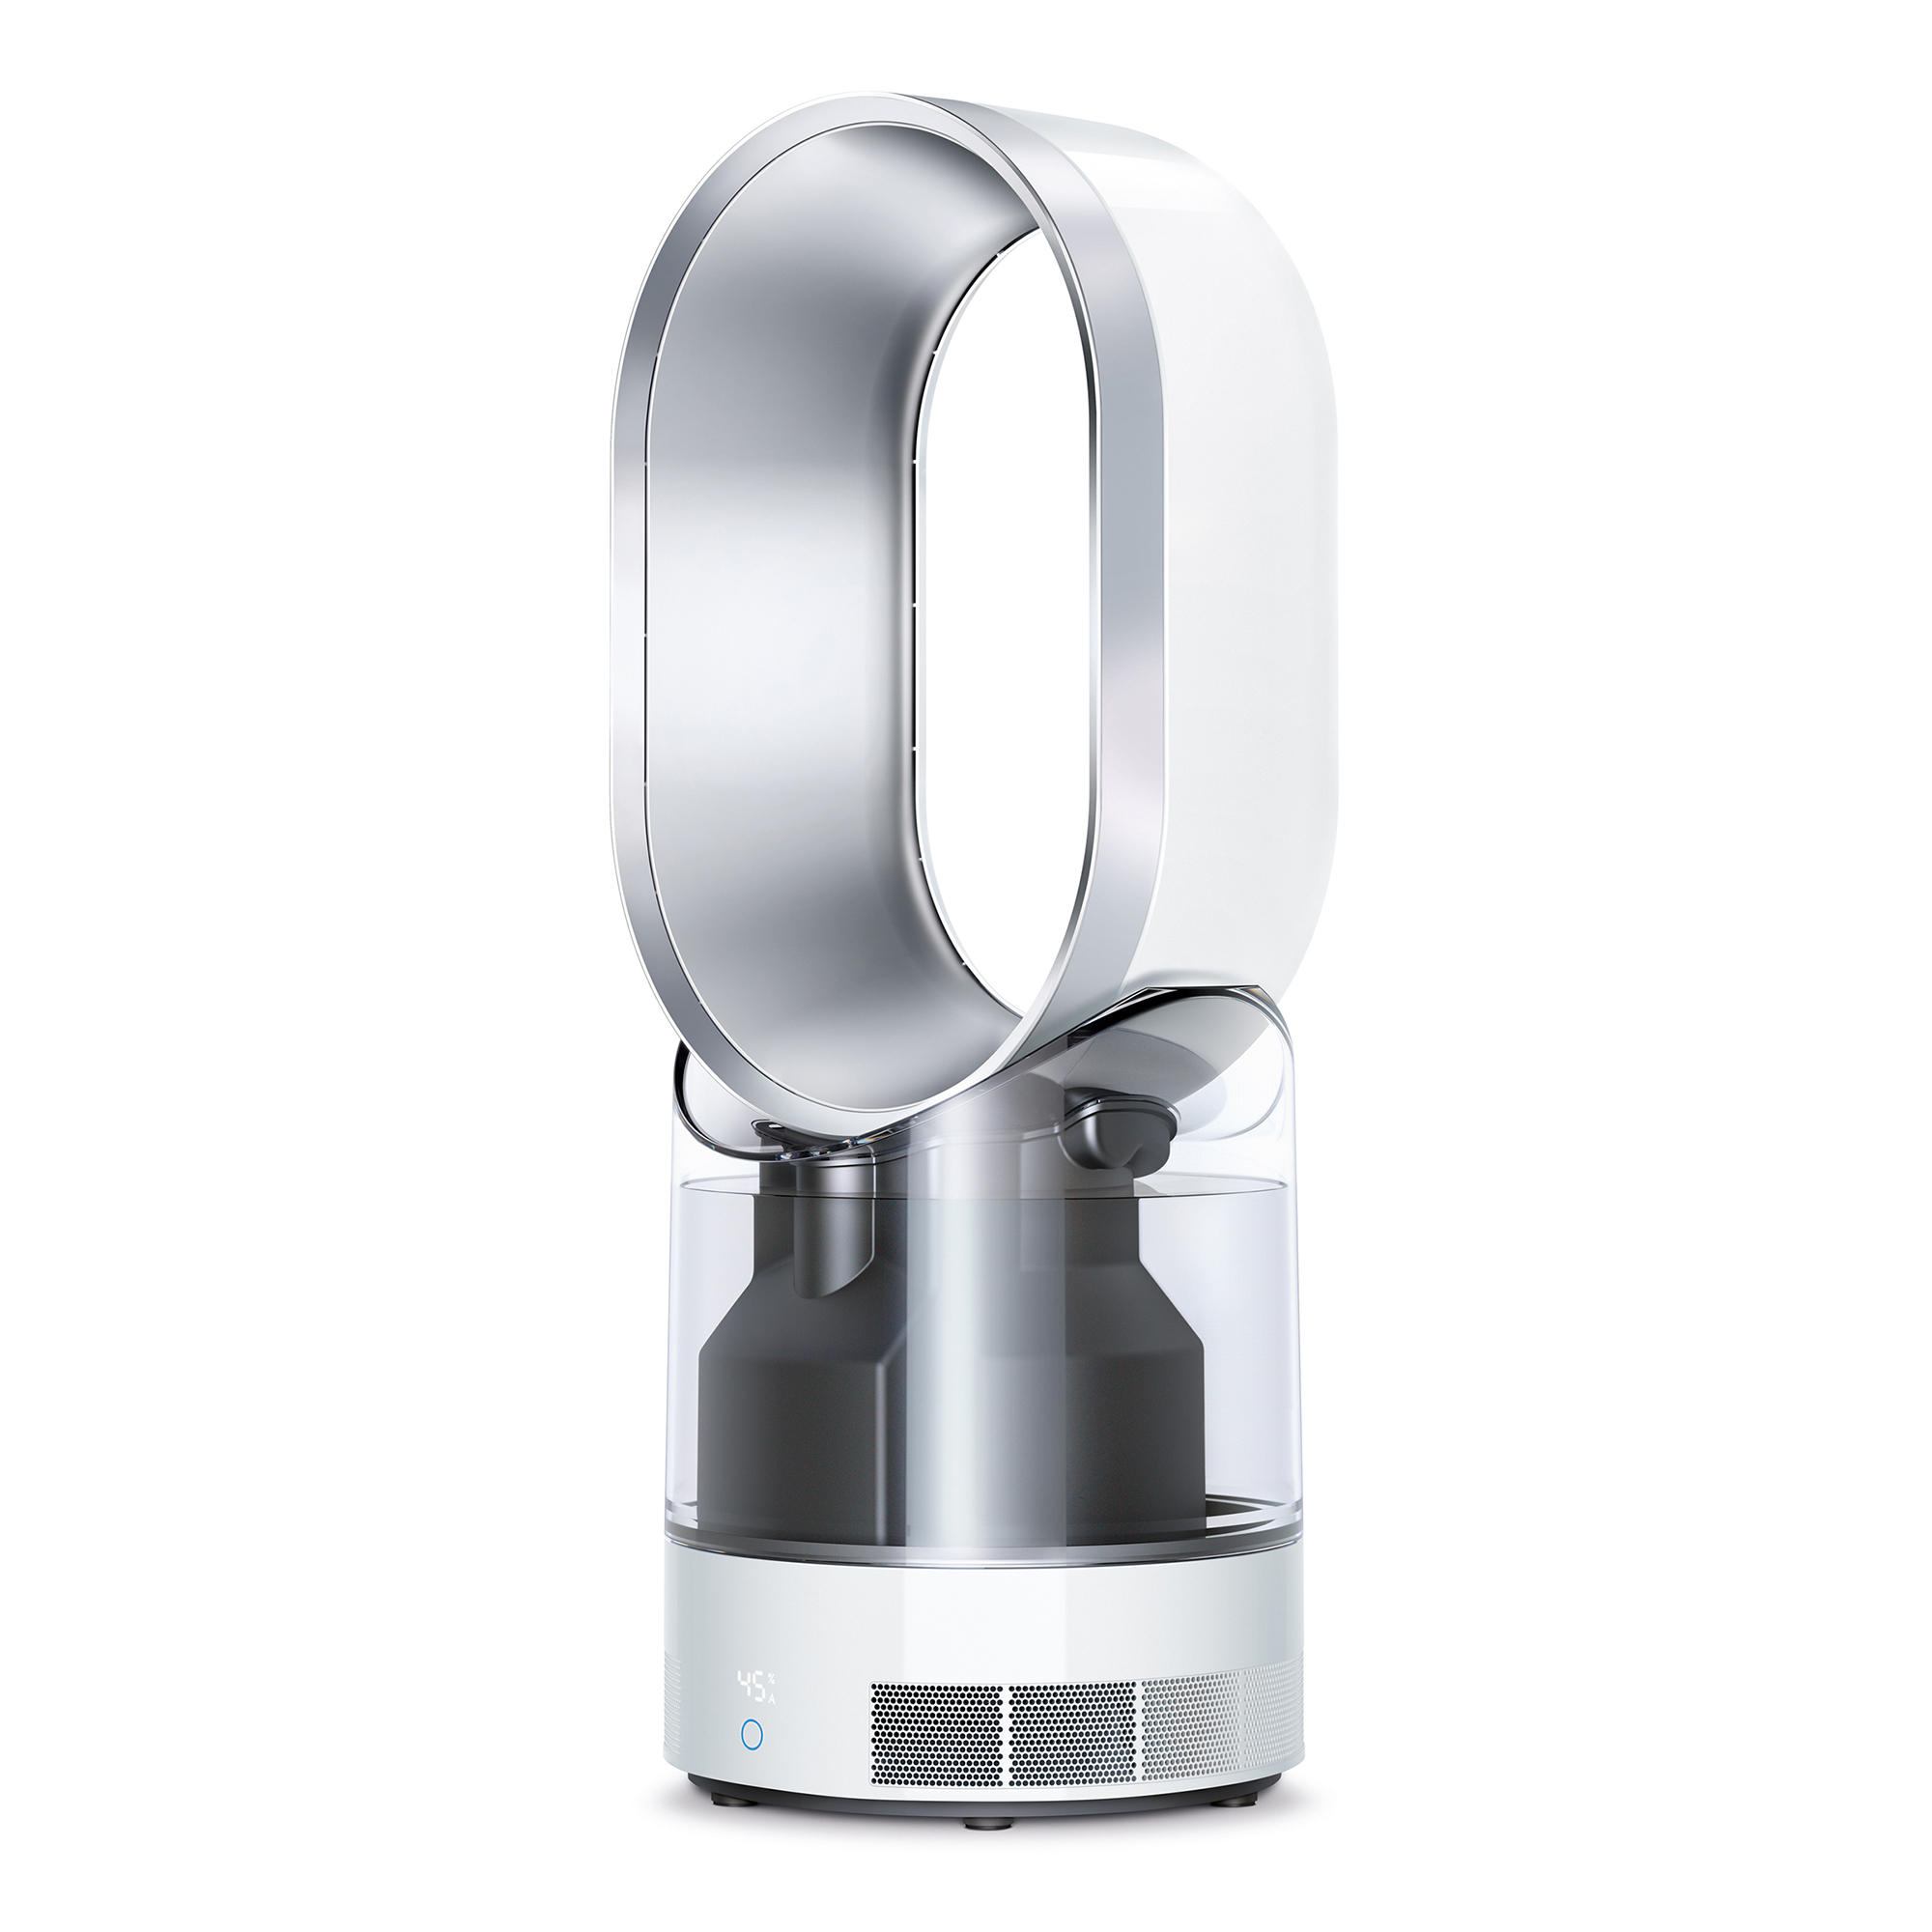 Dyson-AM10-Humidifier-Fan-Refurbished thumbnail 5